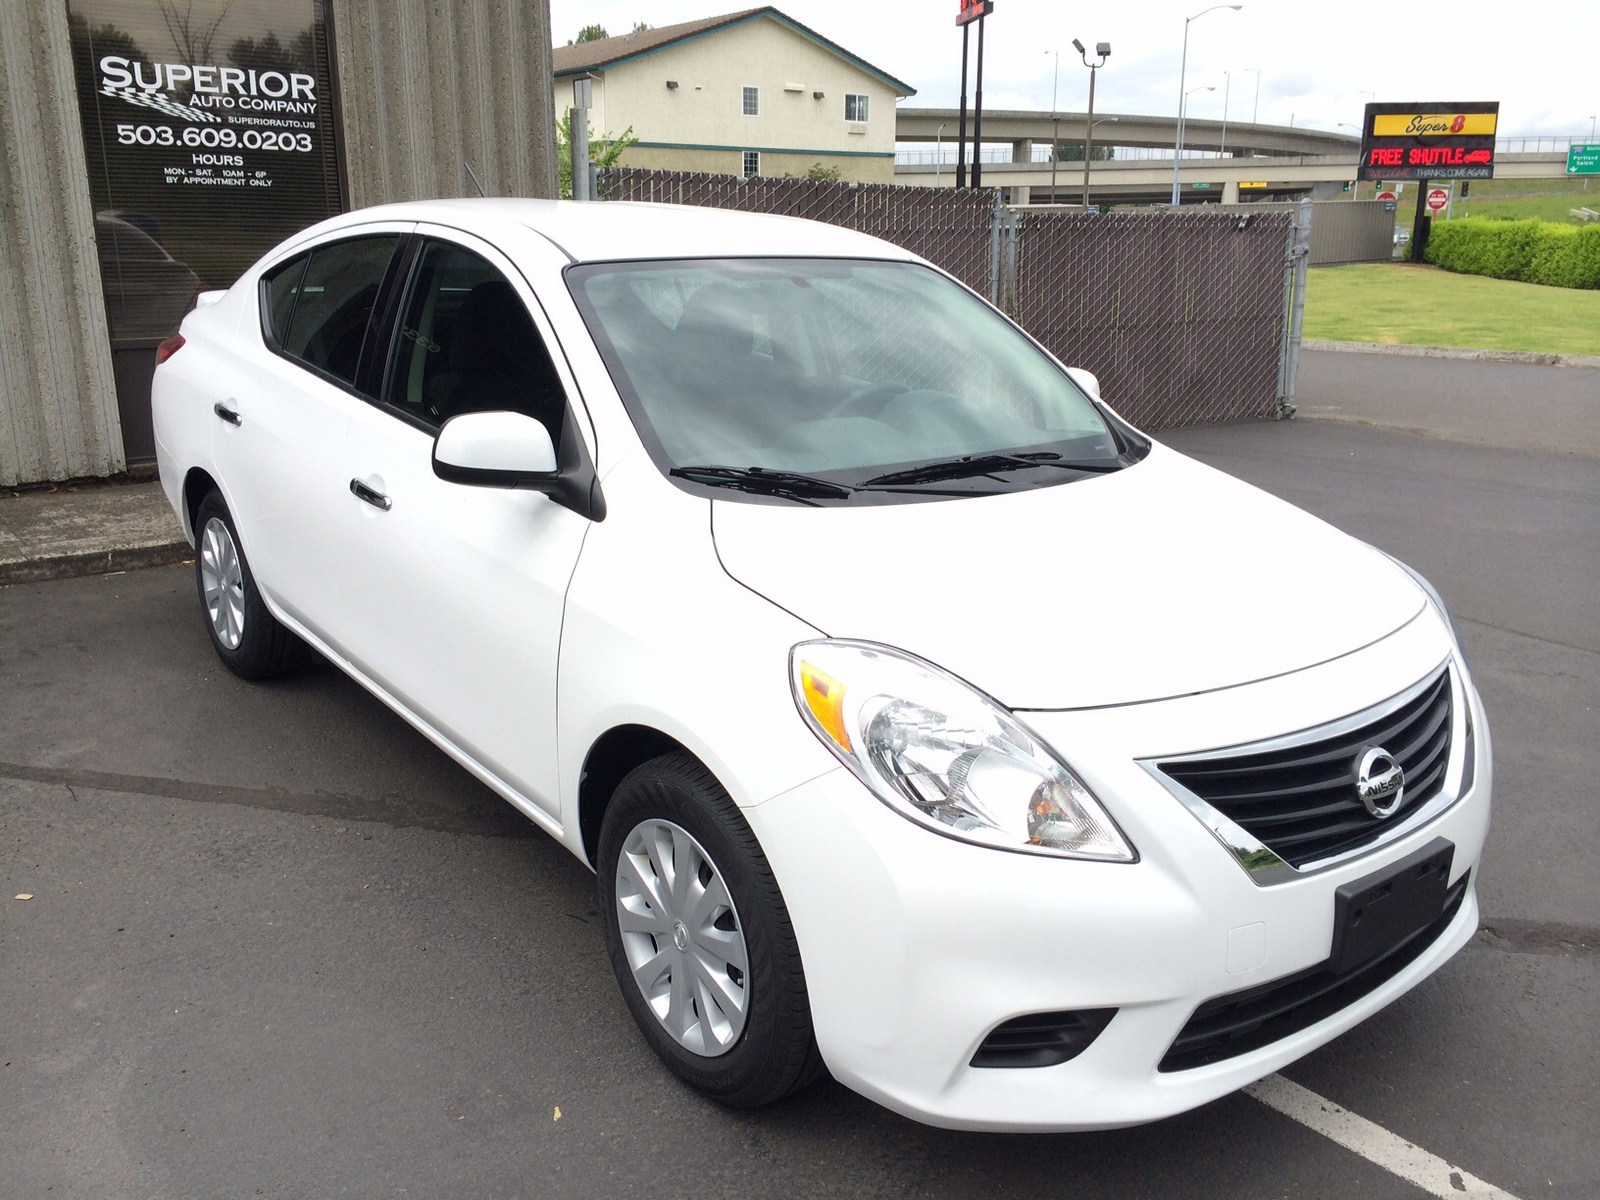 Picture of 2014 Nissan Versa 1.6 SV